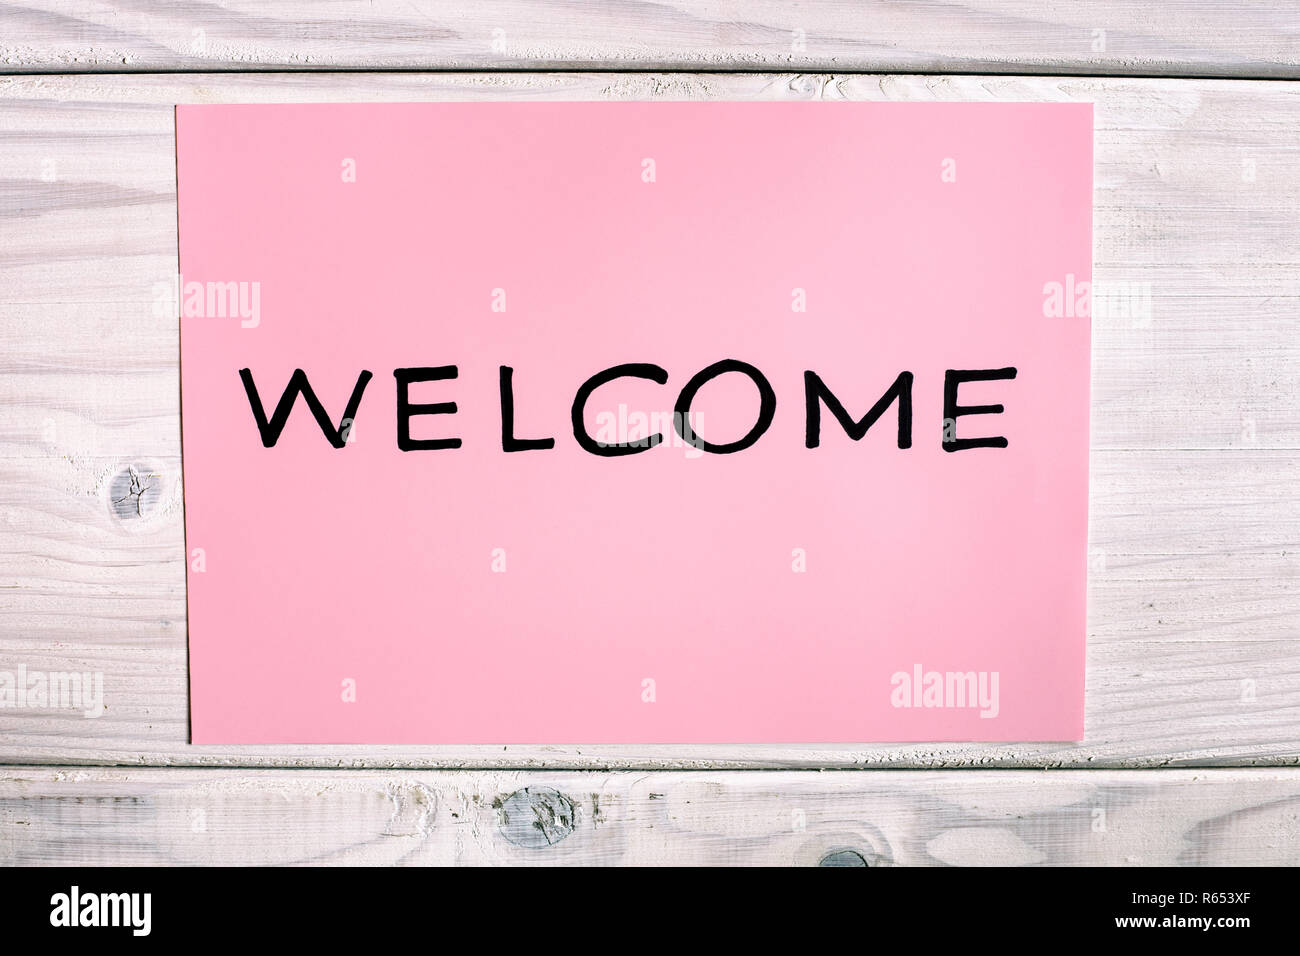 Word welcome on wooden table - Stock Image